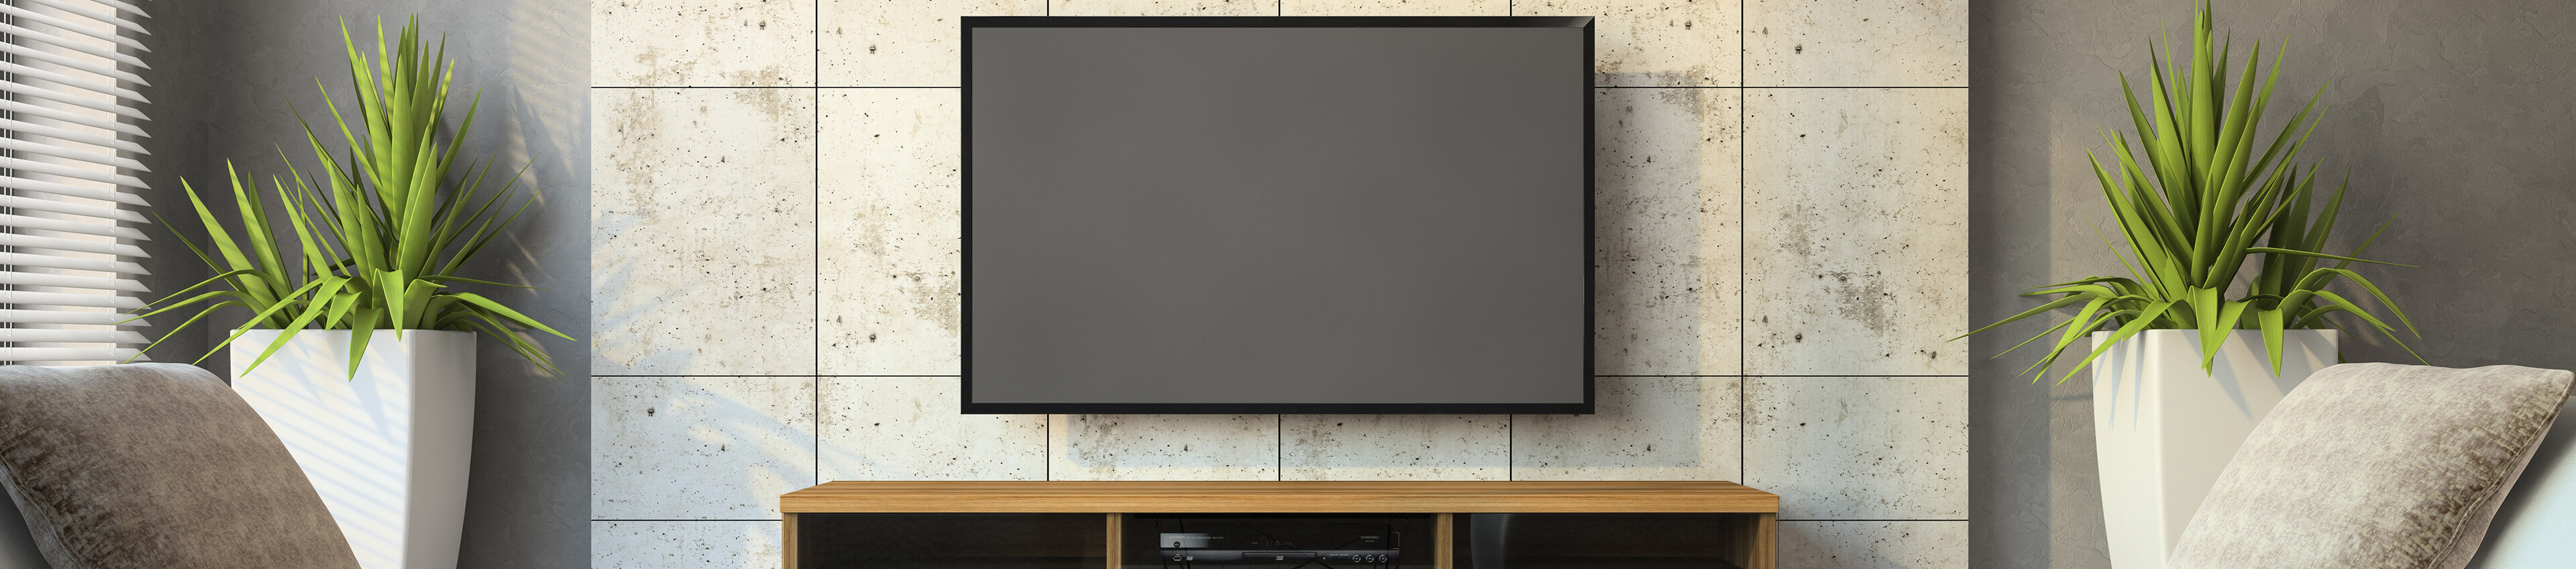 Black Friday OLED tv's